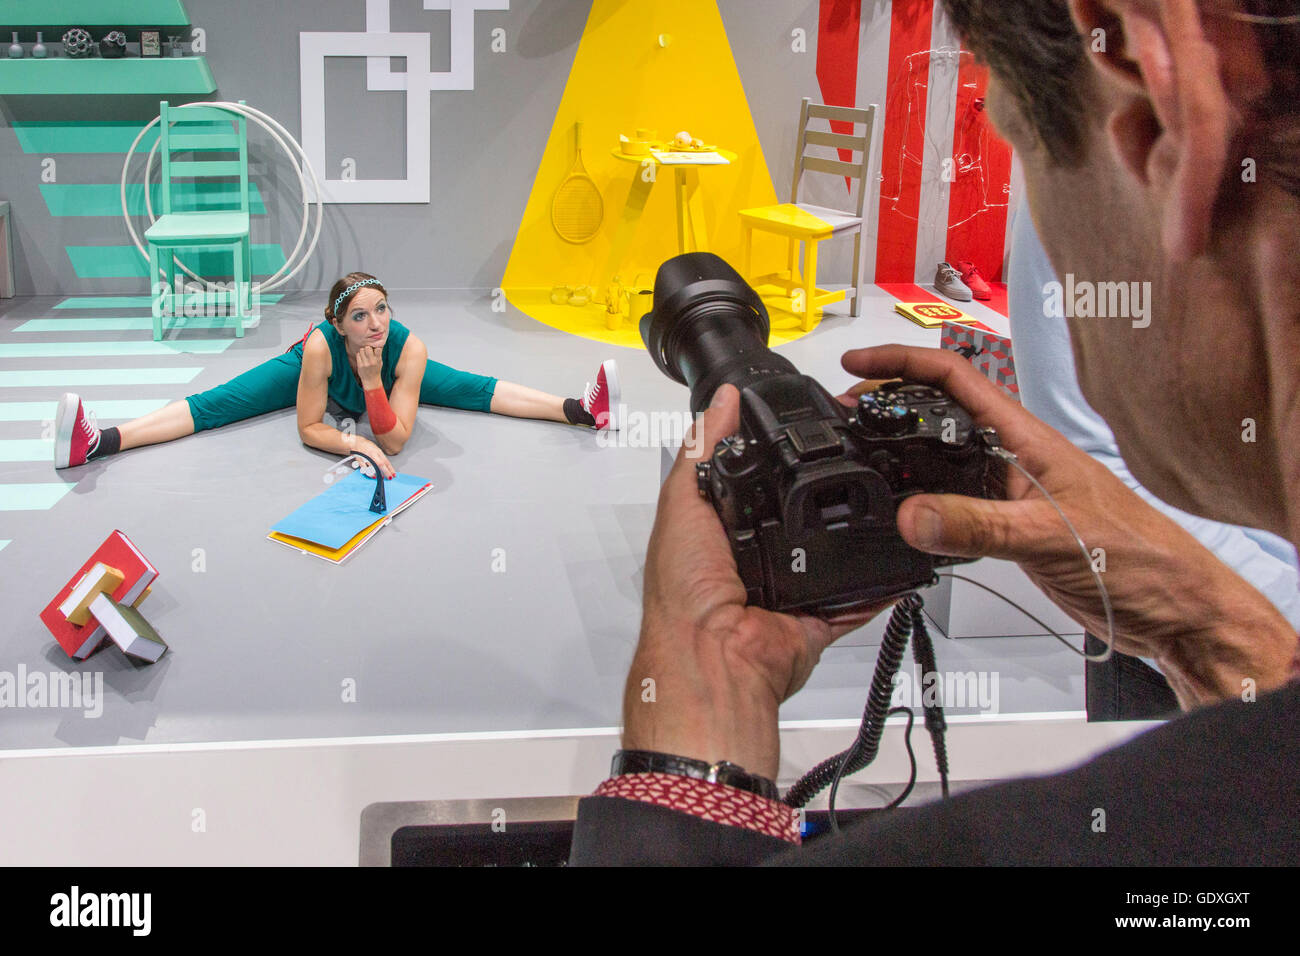 Panasonic Lumix camera at the IFA in Berlin, Germany, 2014 - Stock Image